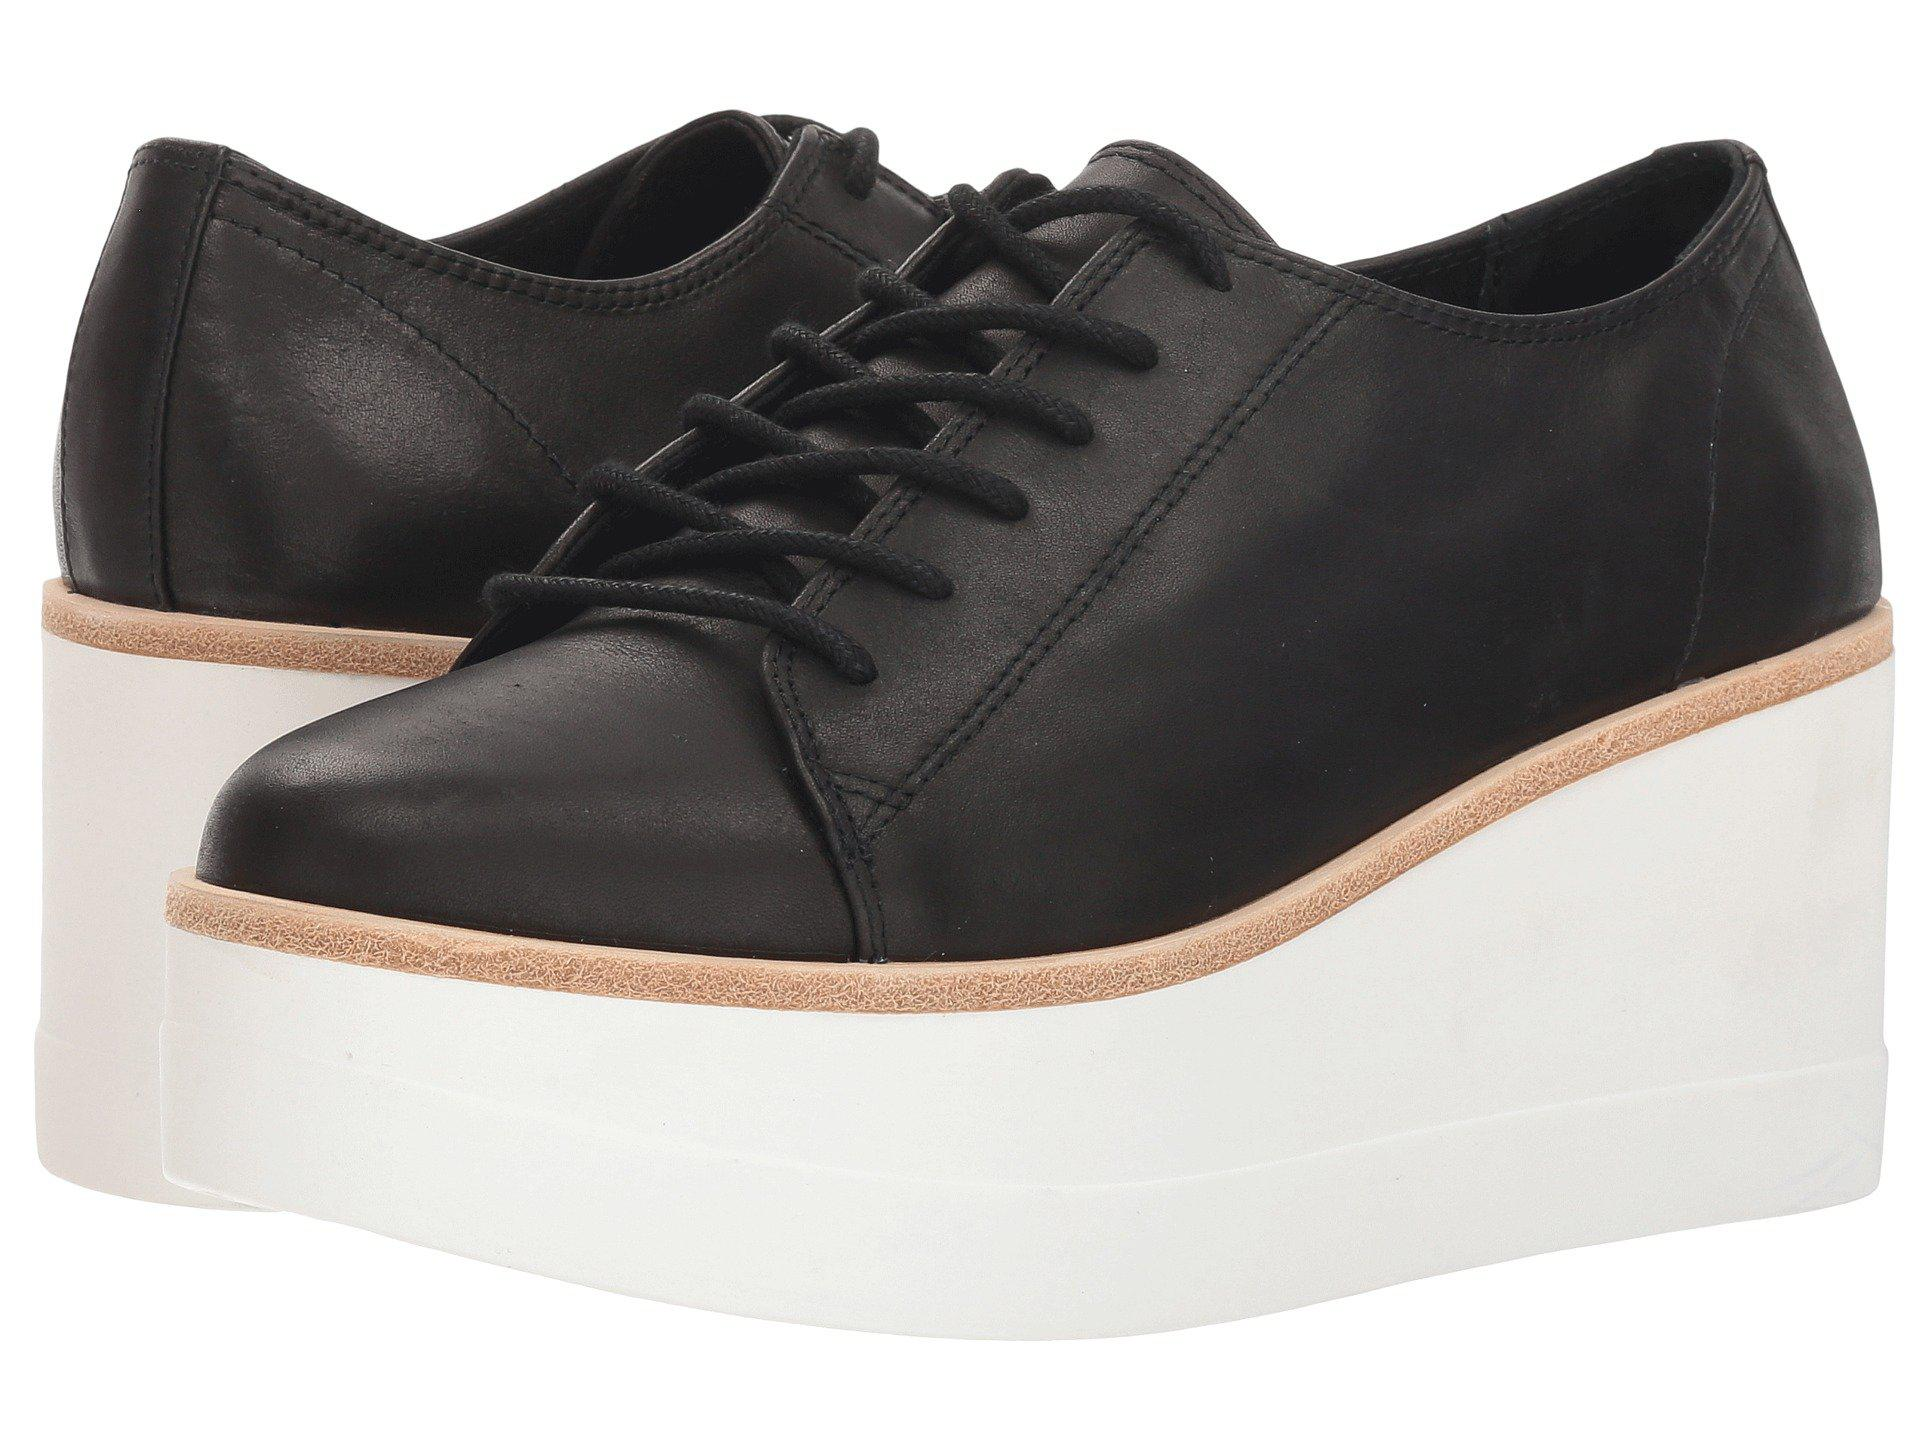 7b8a8449f8c Lyst - Steve Madden Kimber (black Leather) Women s Shoes in Black